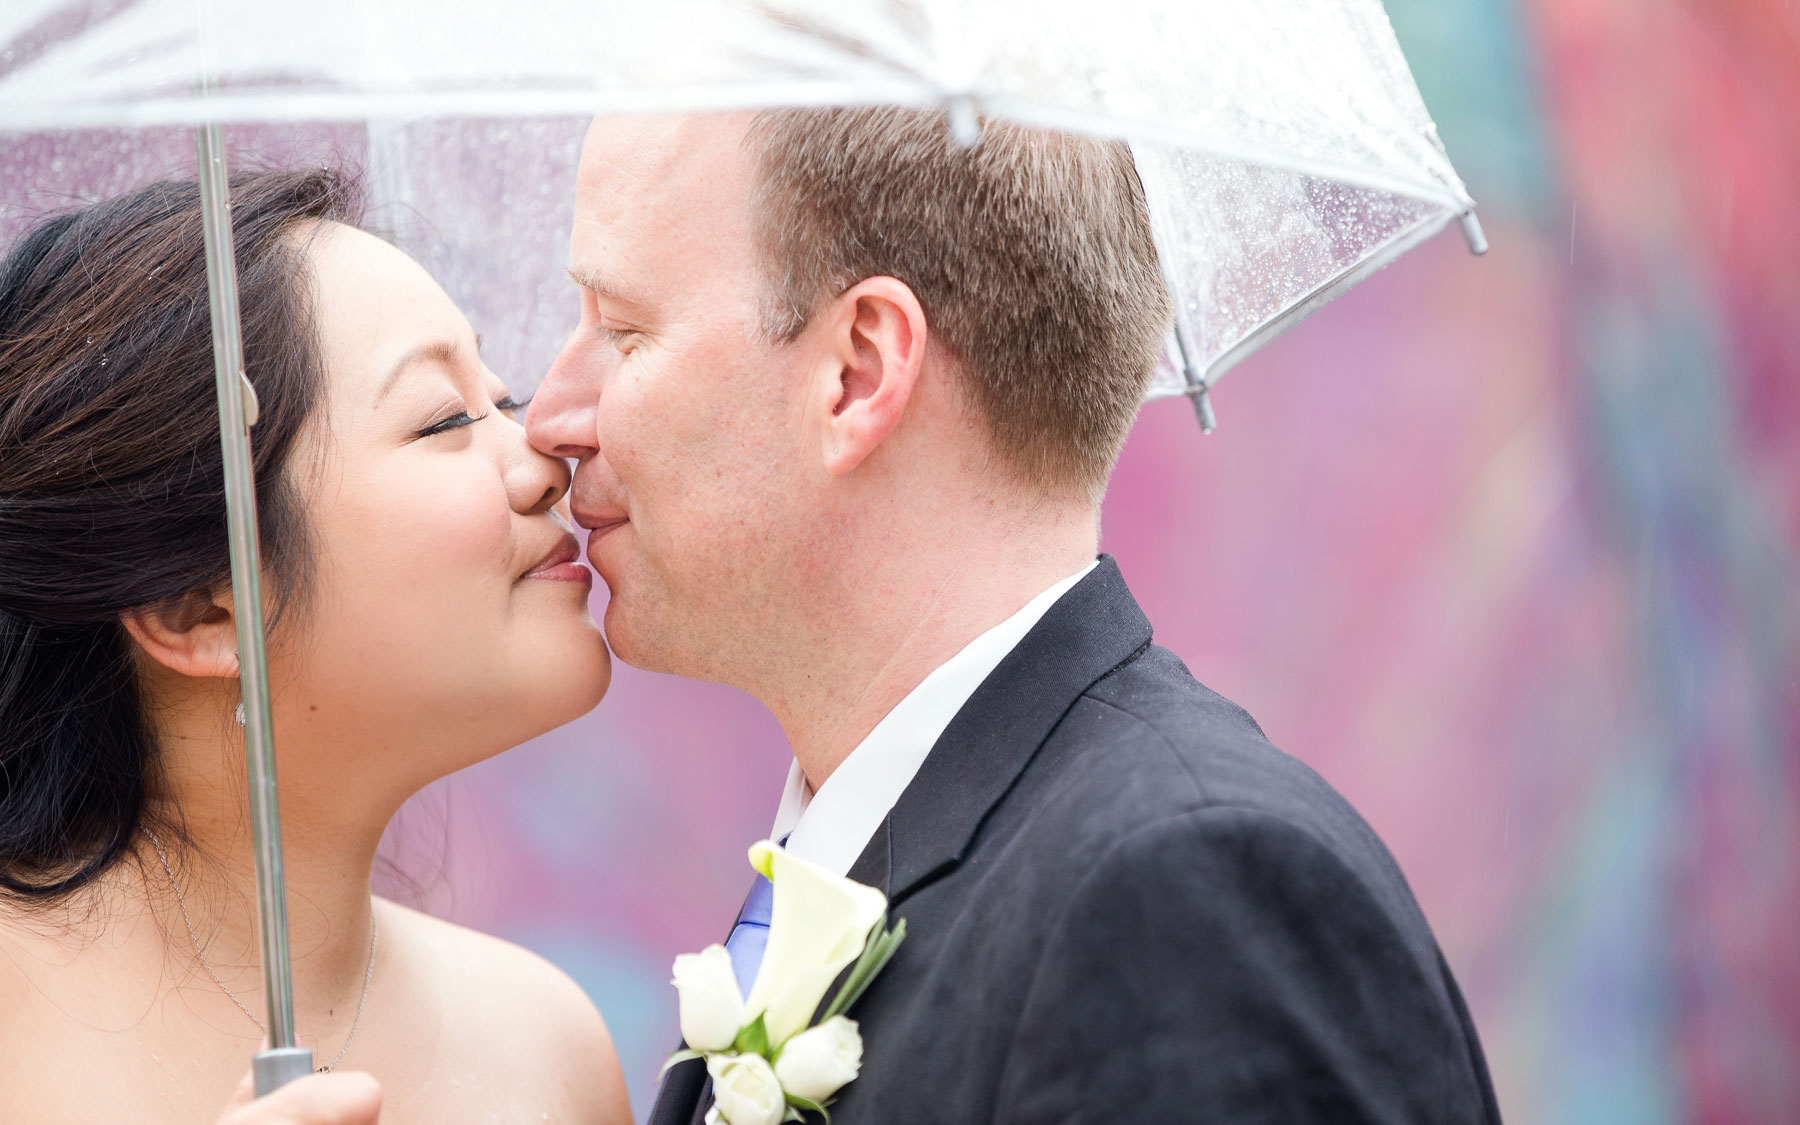 bride-and-groom-kiss-under-umbrella-in-rain